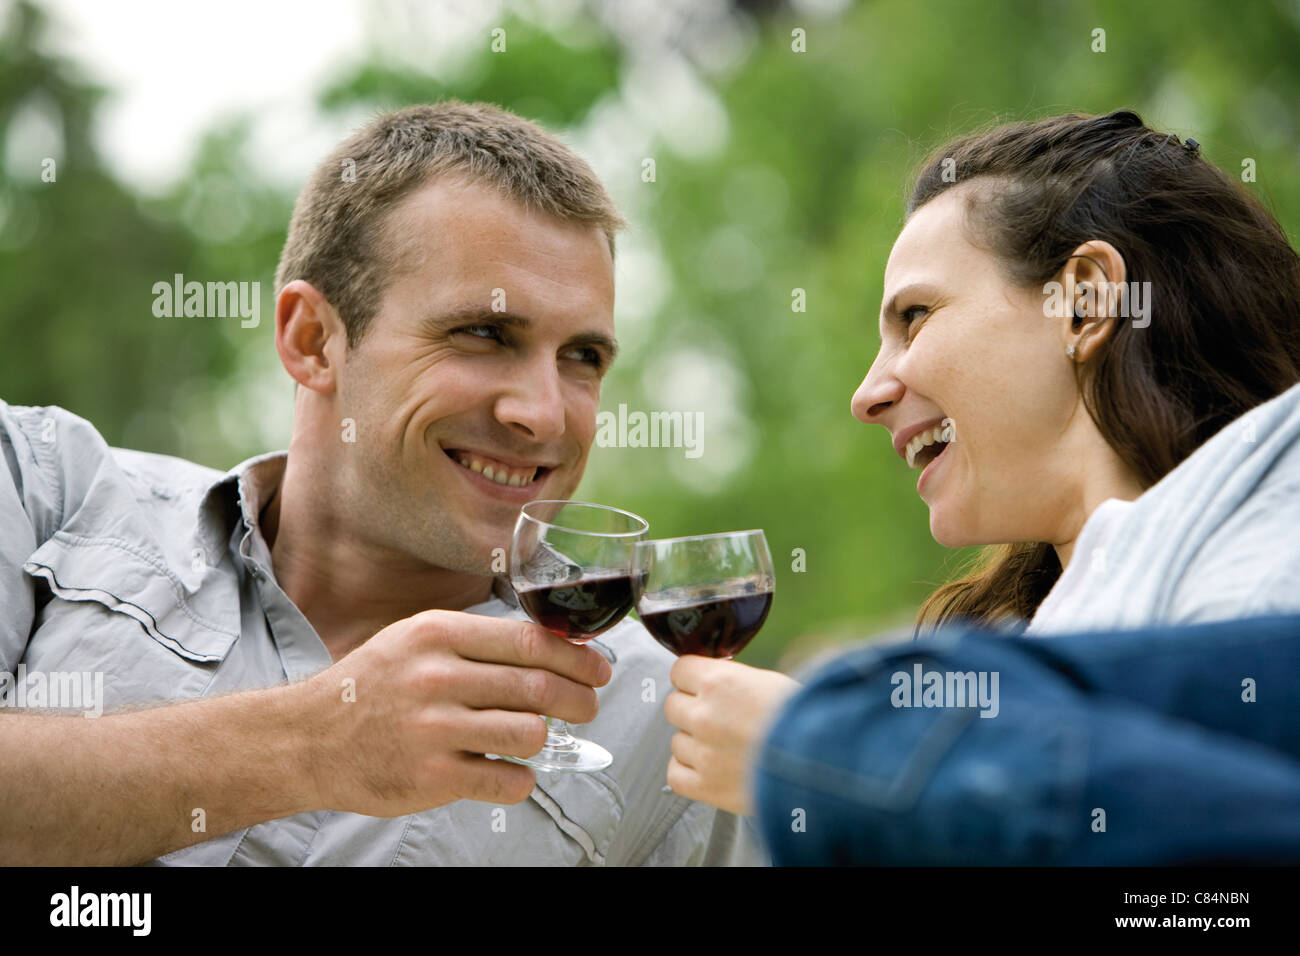 Couple clinking wine glasses outdoors - Stock Image